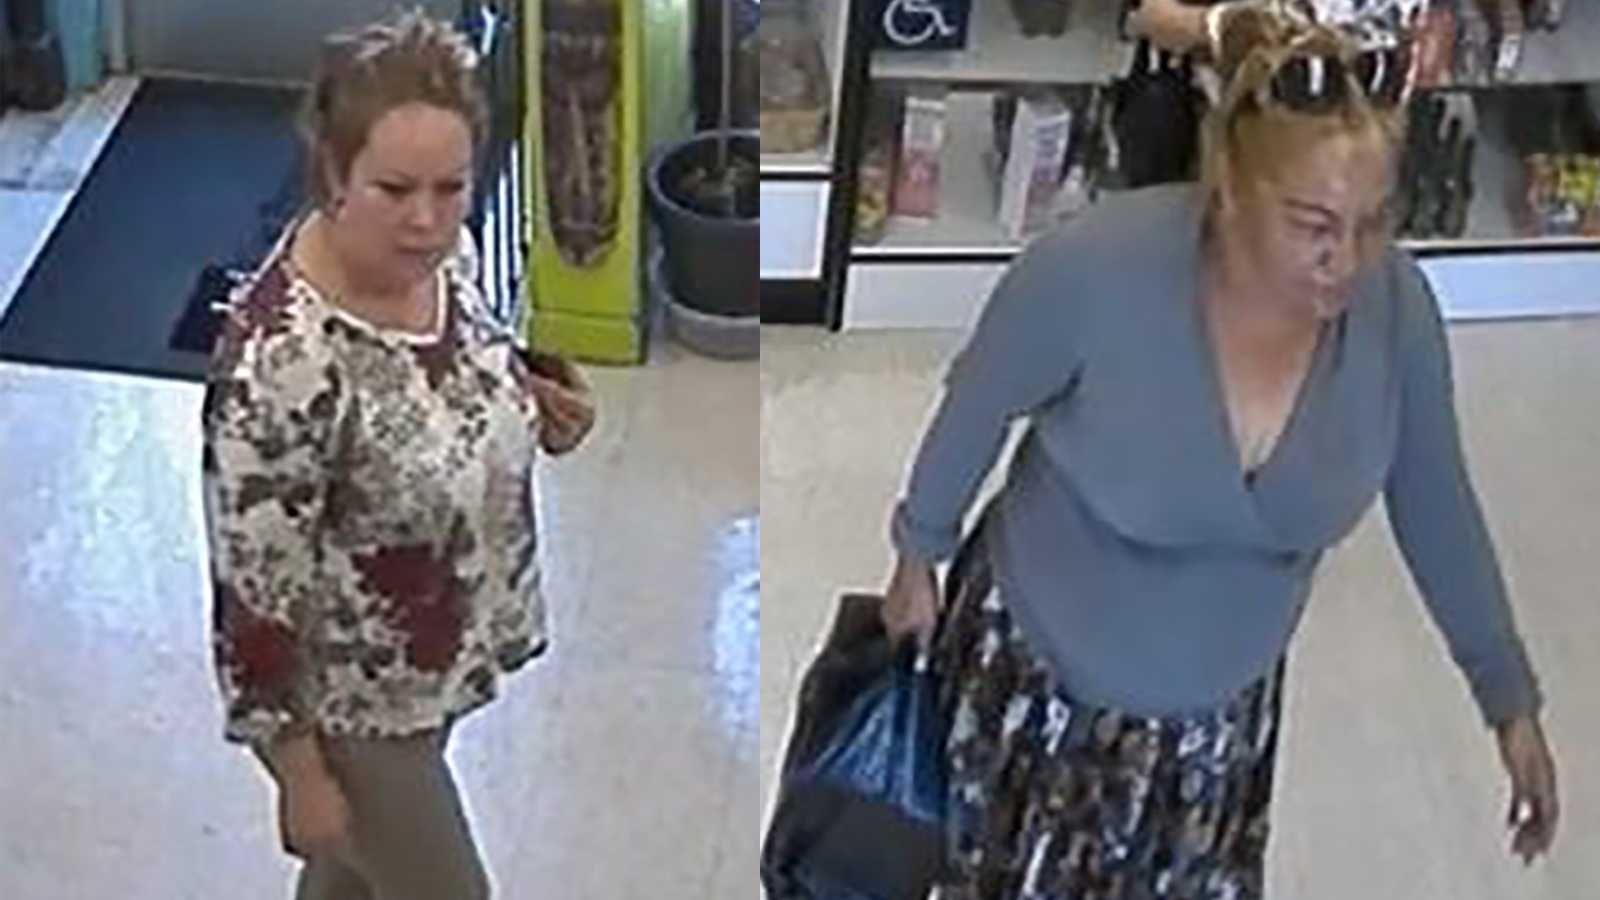 The Sacramento Police Department is looking for two women in connection to the June thefts of personal items and credit cards from employees at two Sacramento businesses.